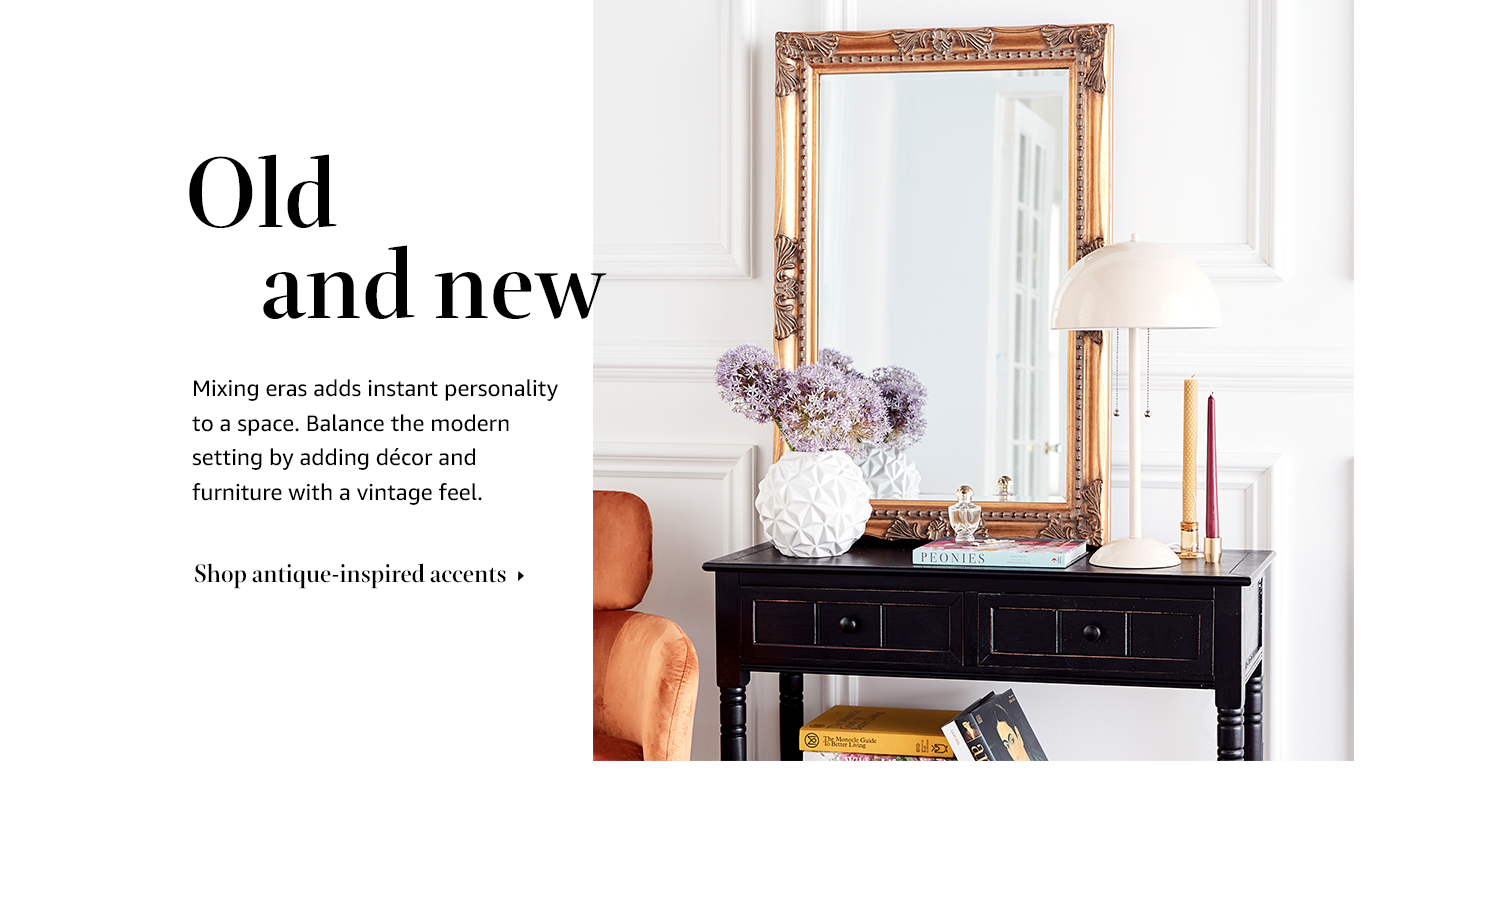 Antique-inspired accents